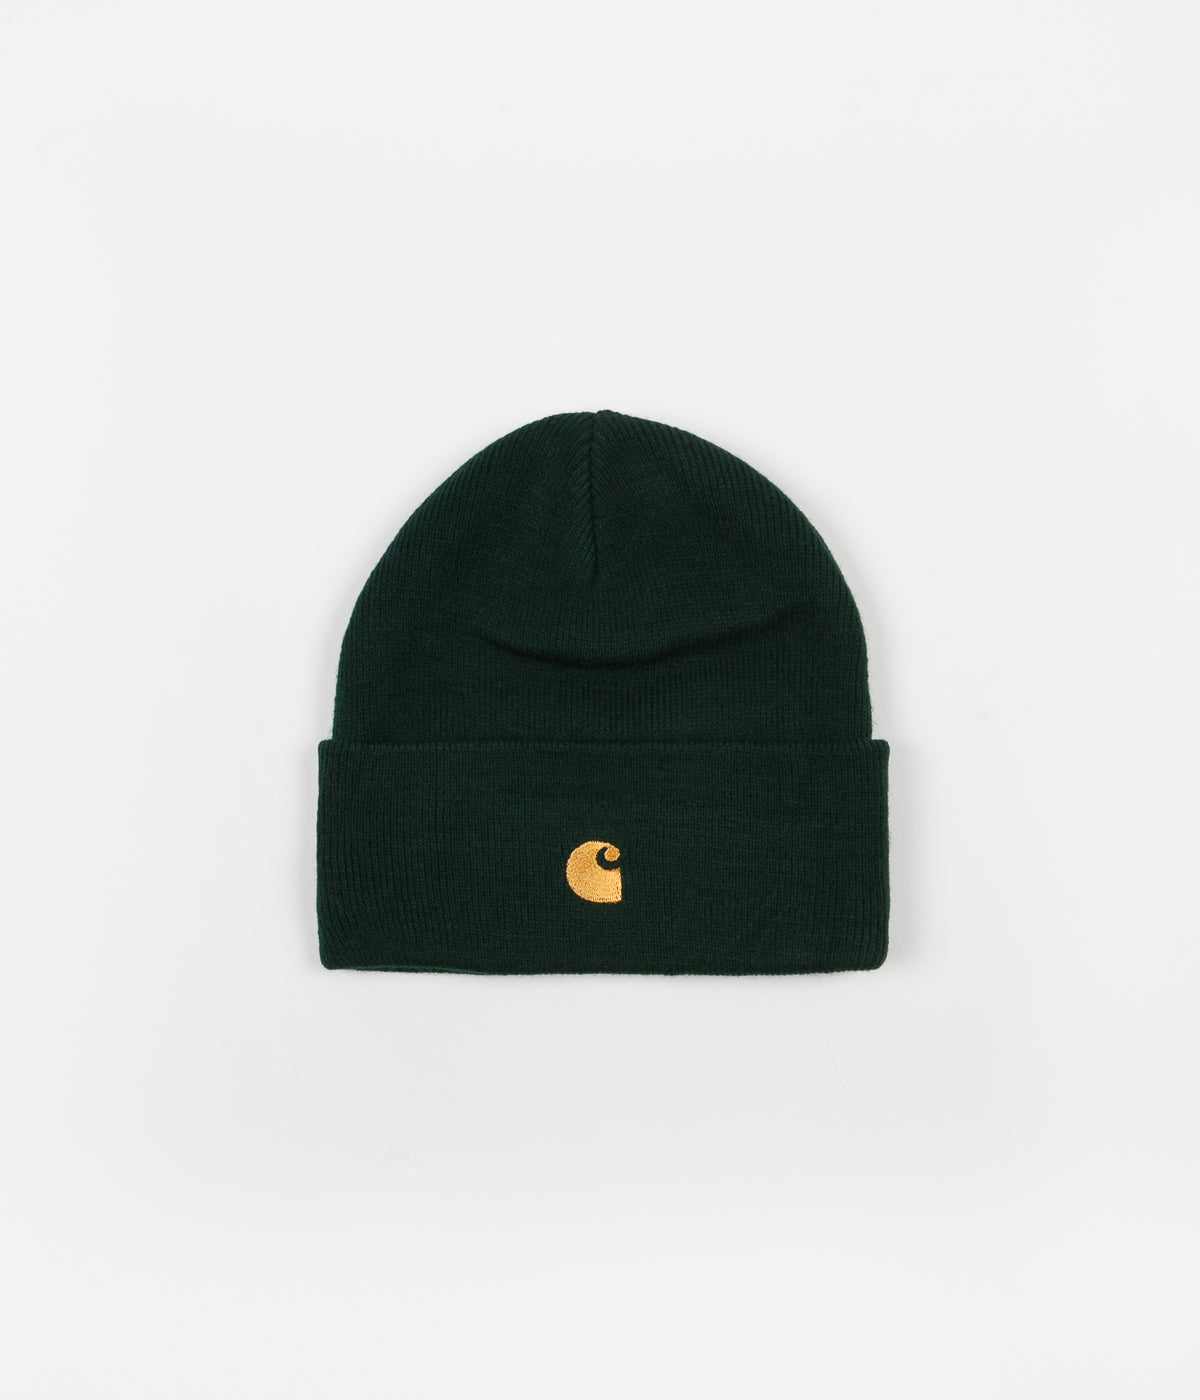 a7bde8409fe2e Previous. Carhartt Chase Beanie - Bottle Green Carhartt Chase Beanie -  Bottle Green ...